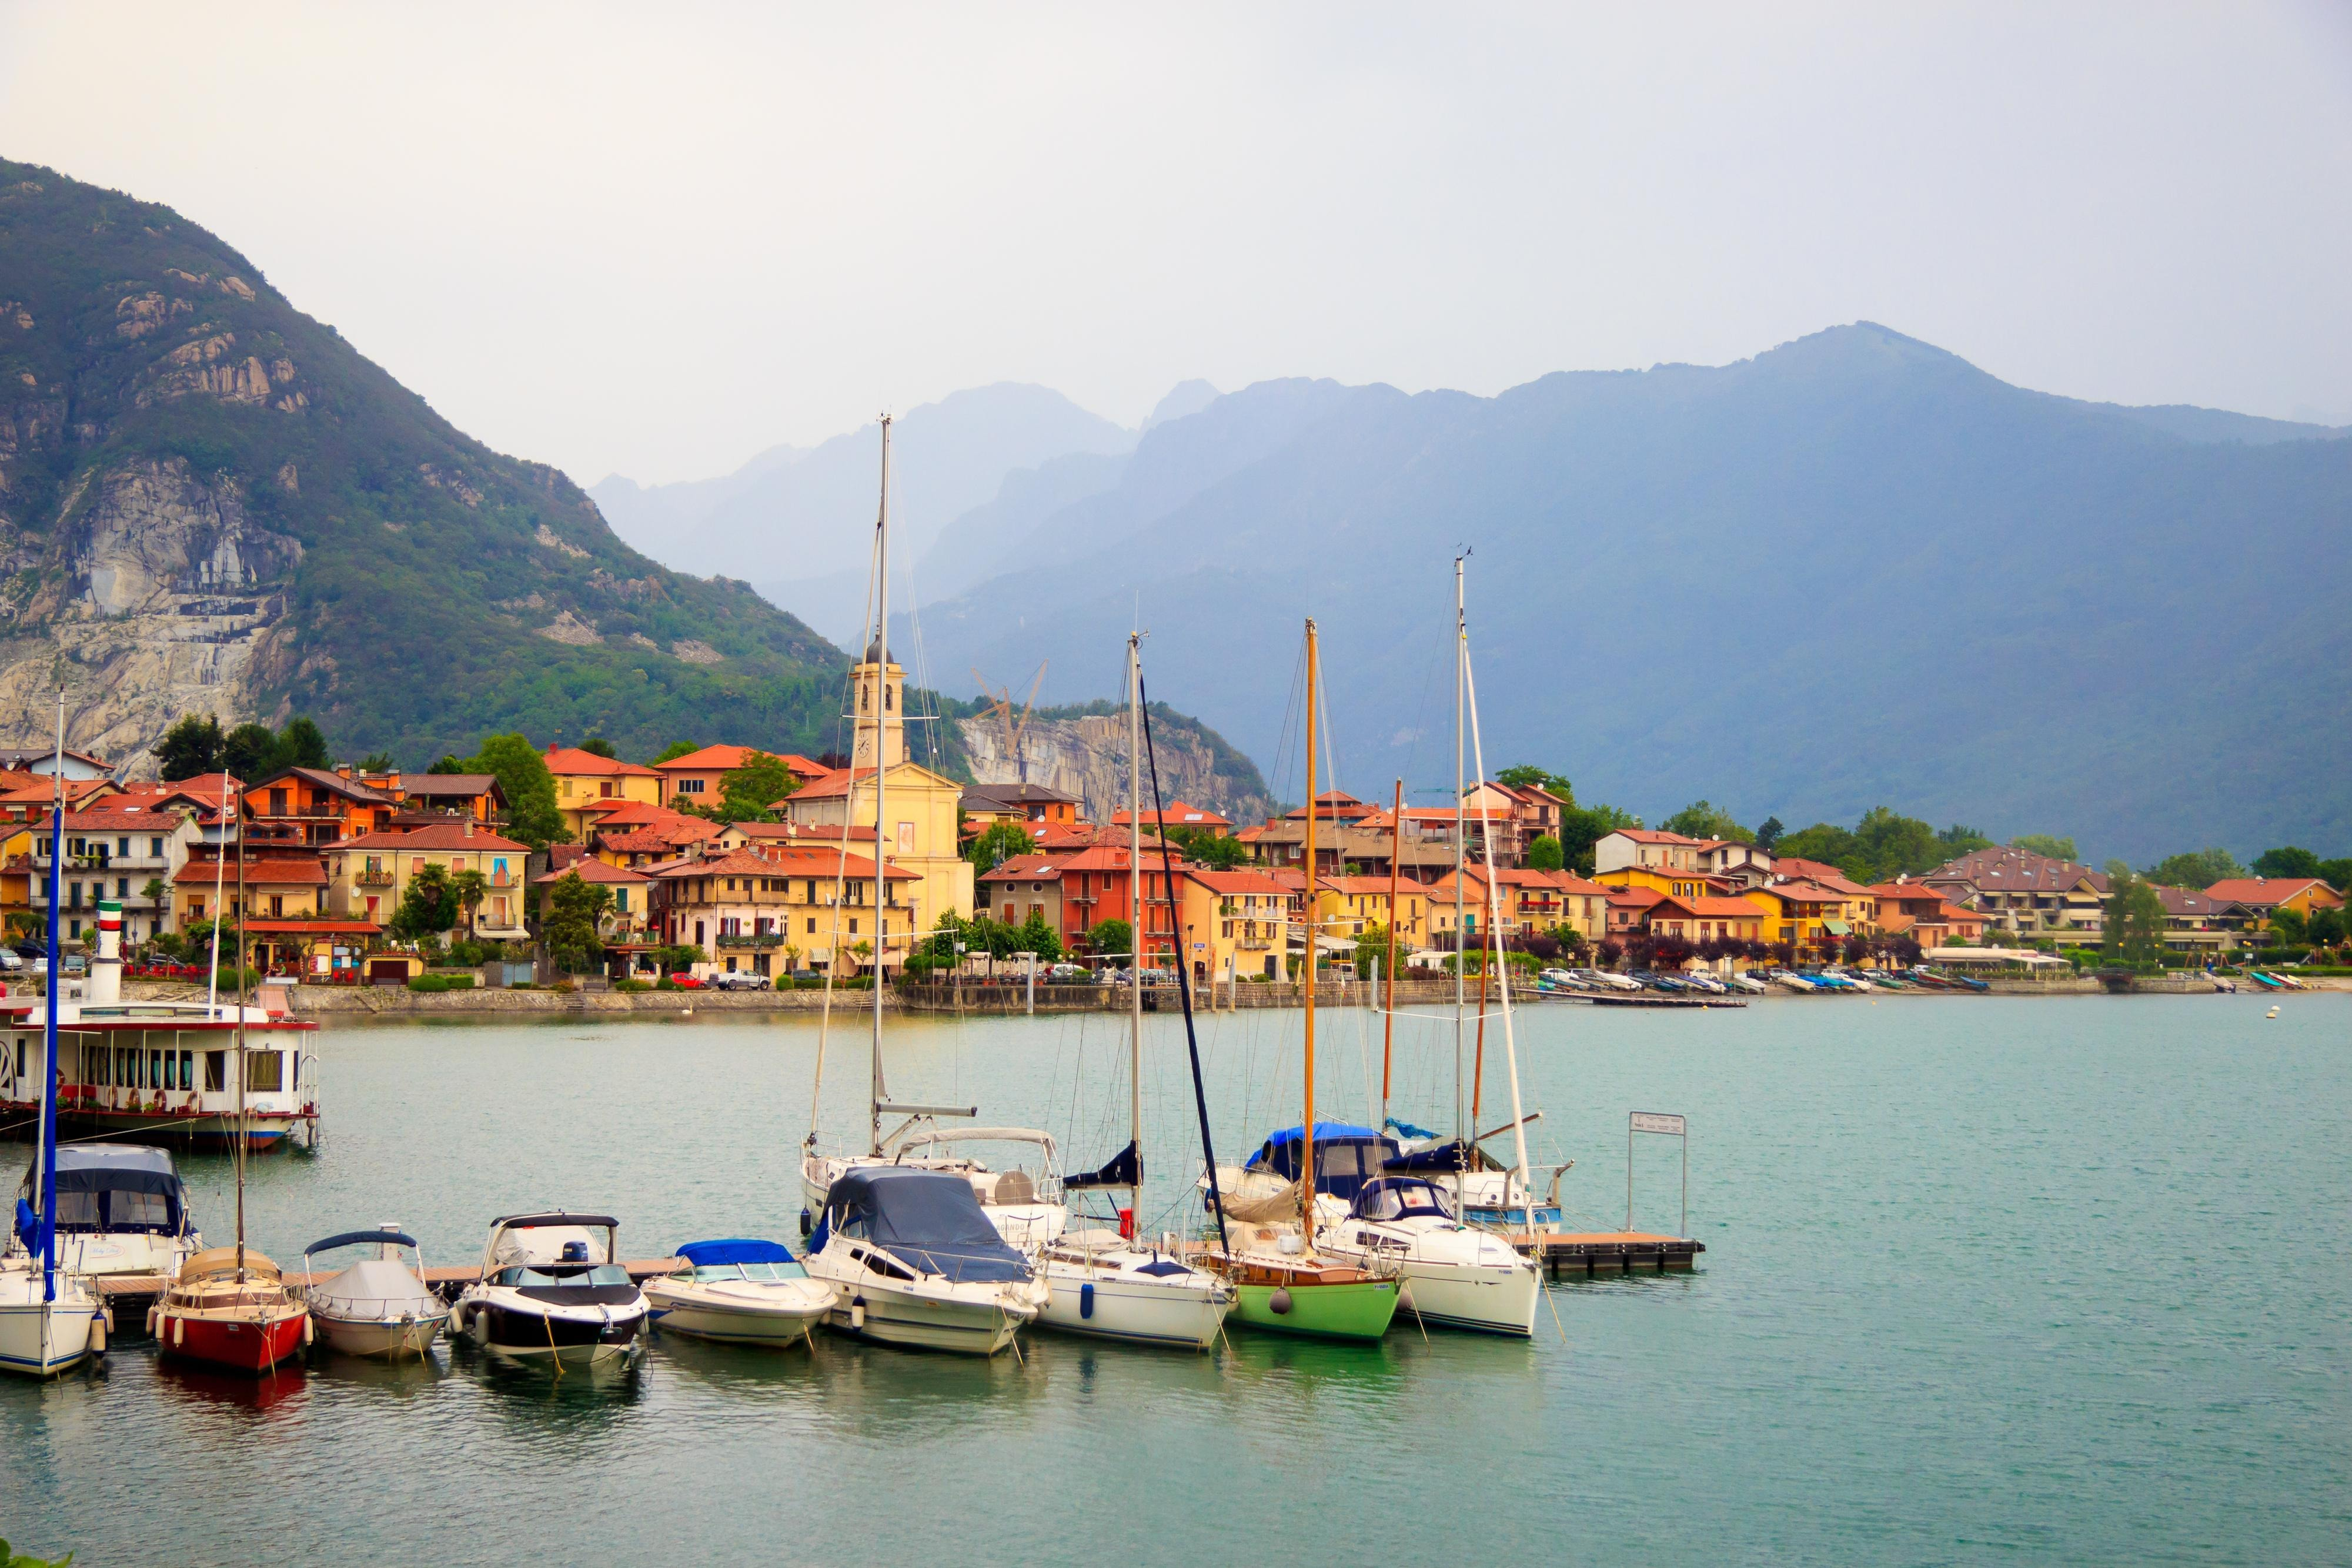 How to Spend 1 Day on Lake Maggiore